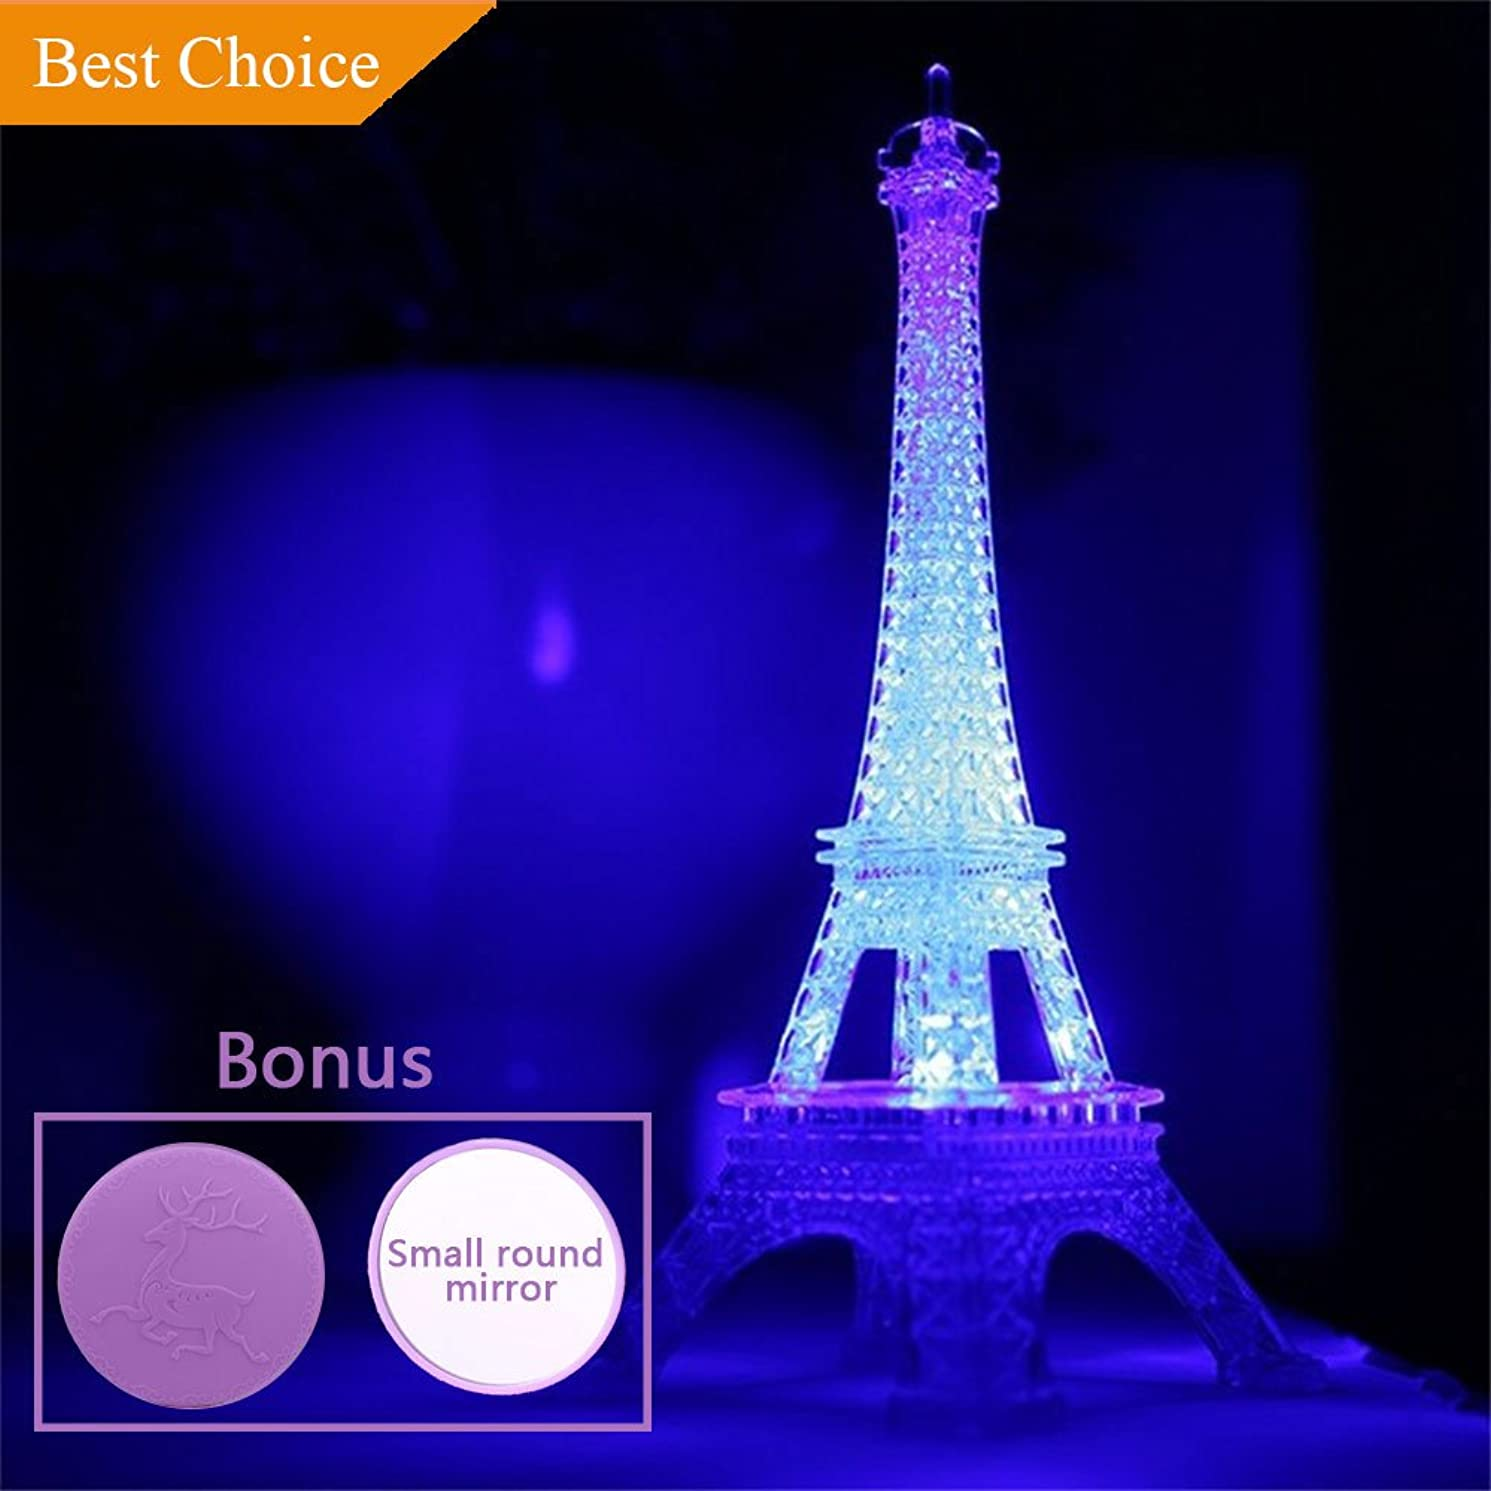 Eiffel Tower Nightlight Desk Bedroom Decoration LED Lamp Colorful Paris Fashion Style Acrylic 10 Inch Cake Topper Decoration Gift